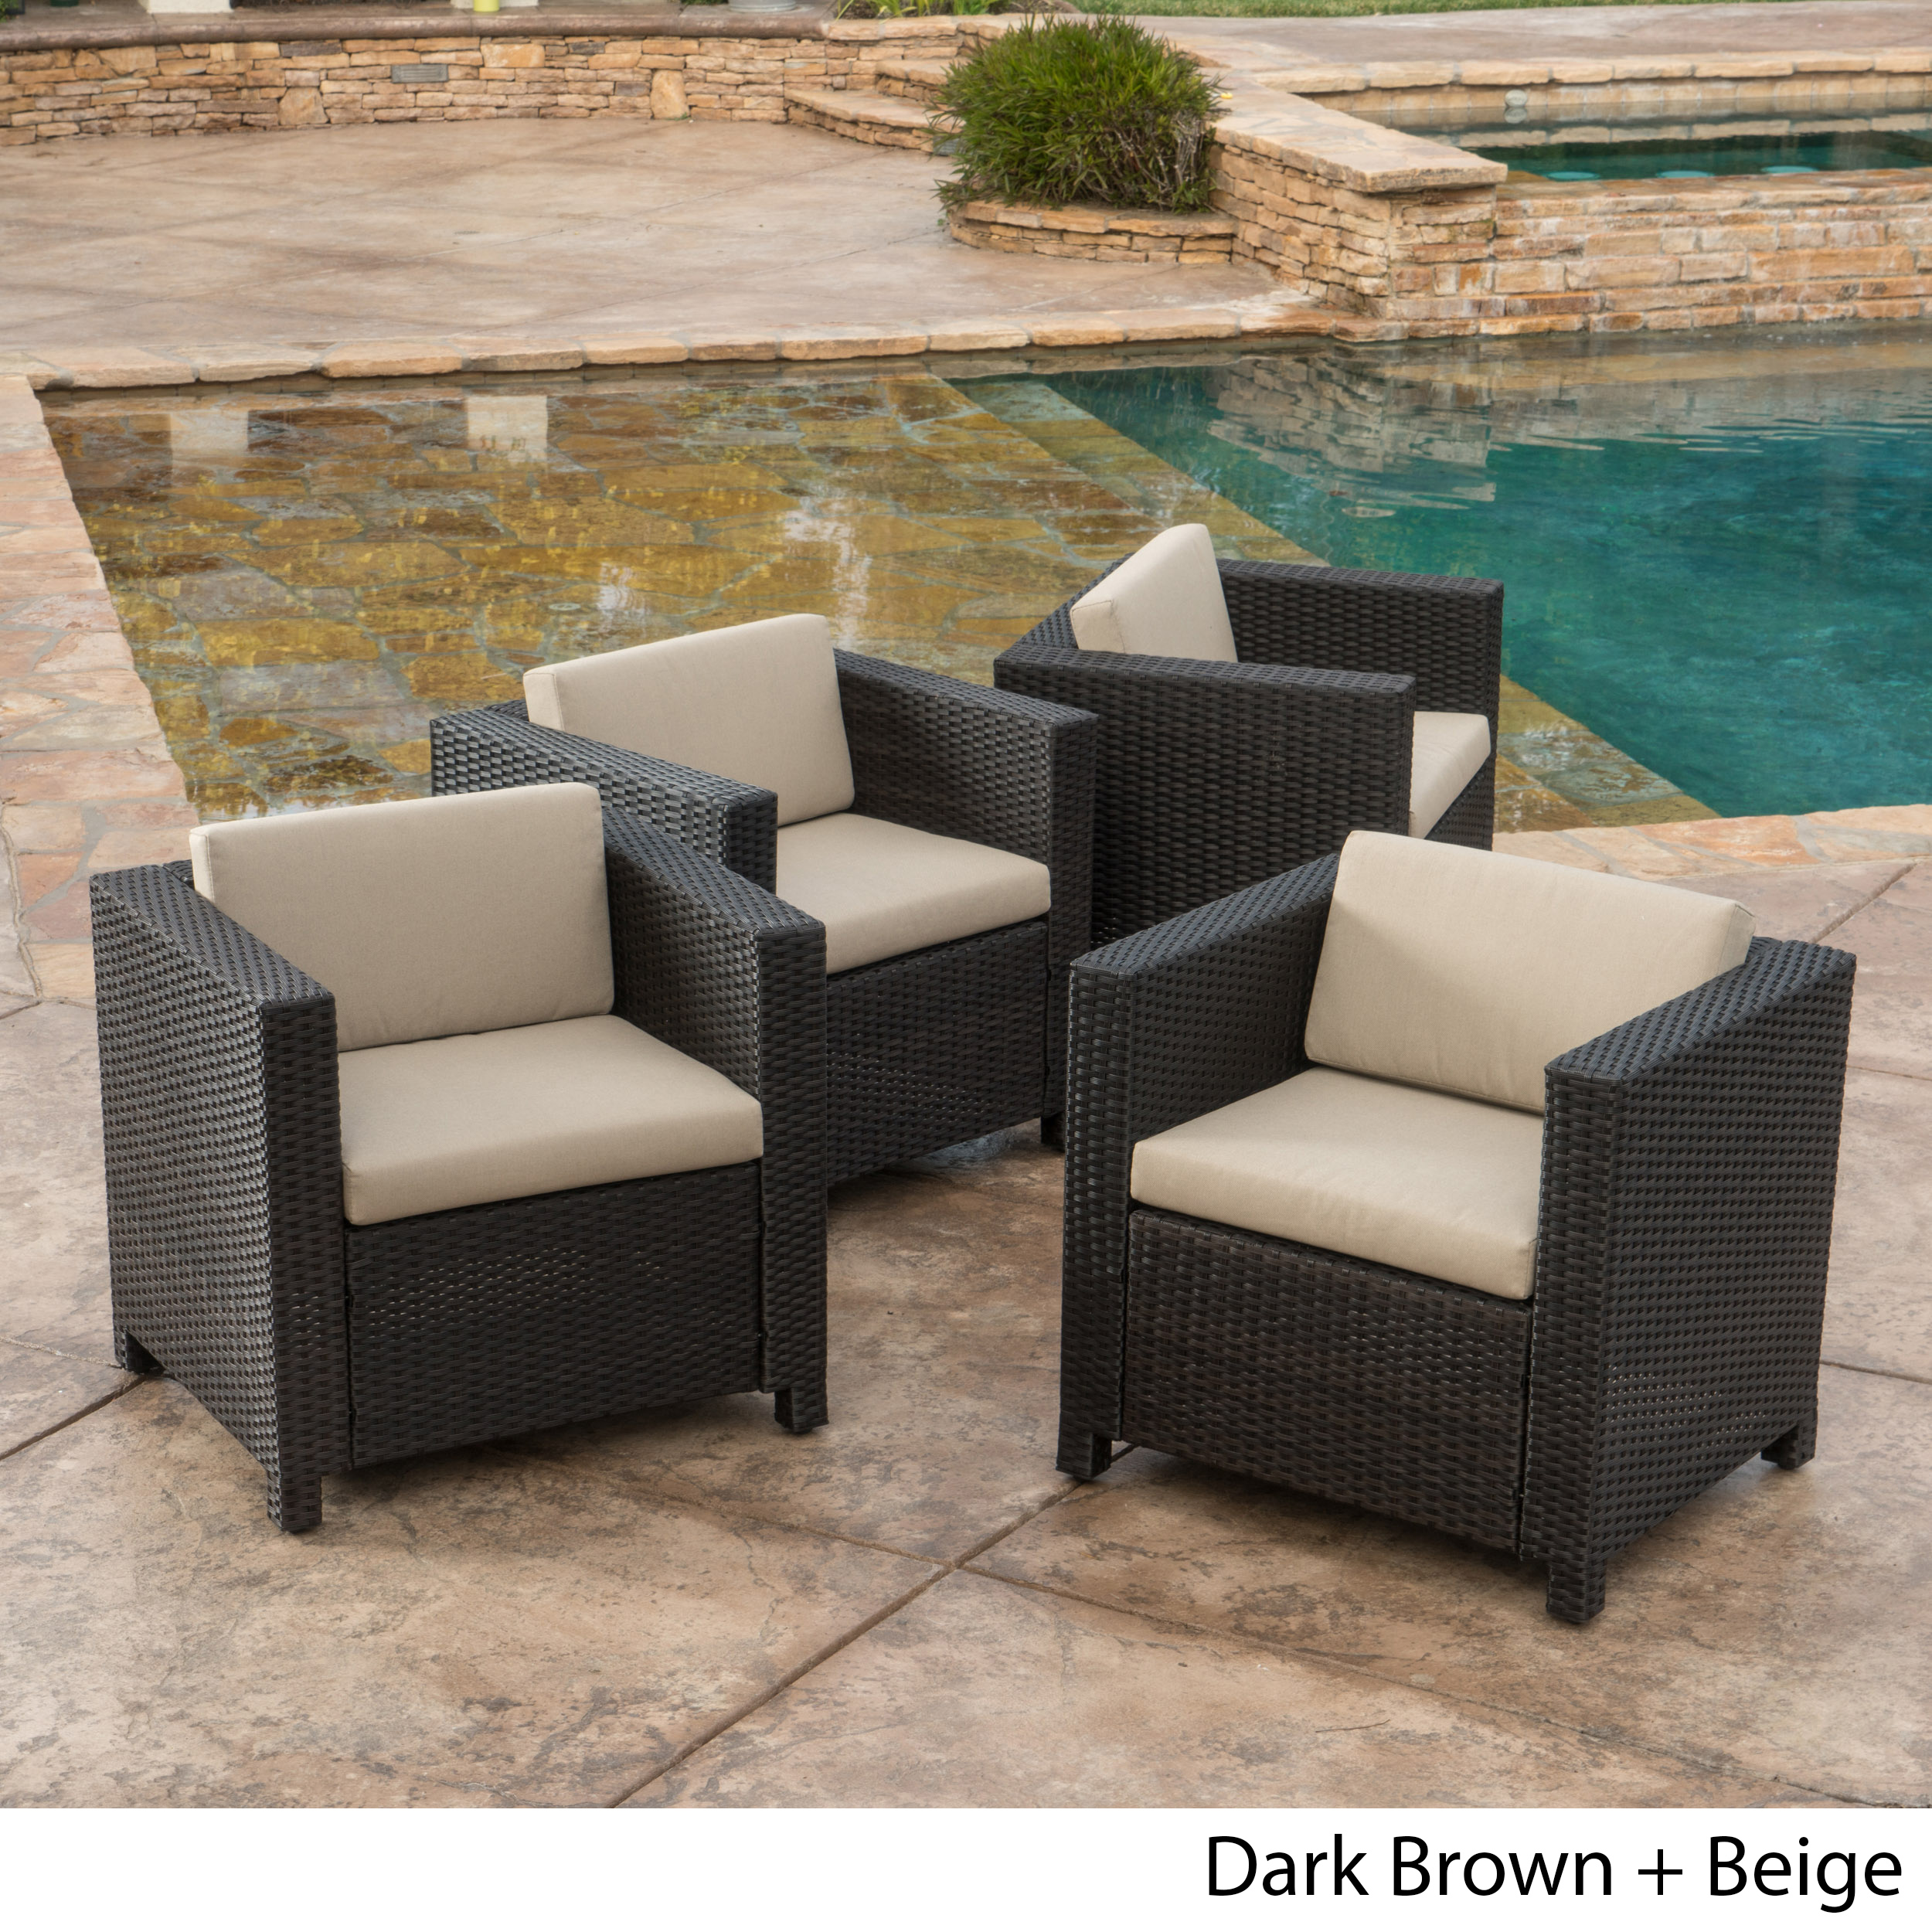 Raleigh Outdoor Wicker Club Chairs with Cushions, Set of 4, Multiple Colors